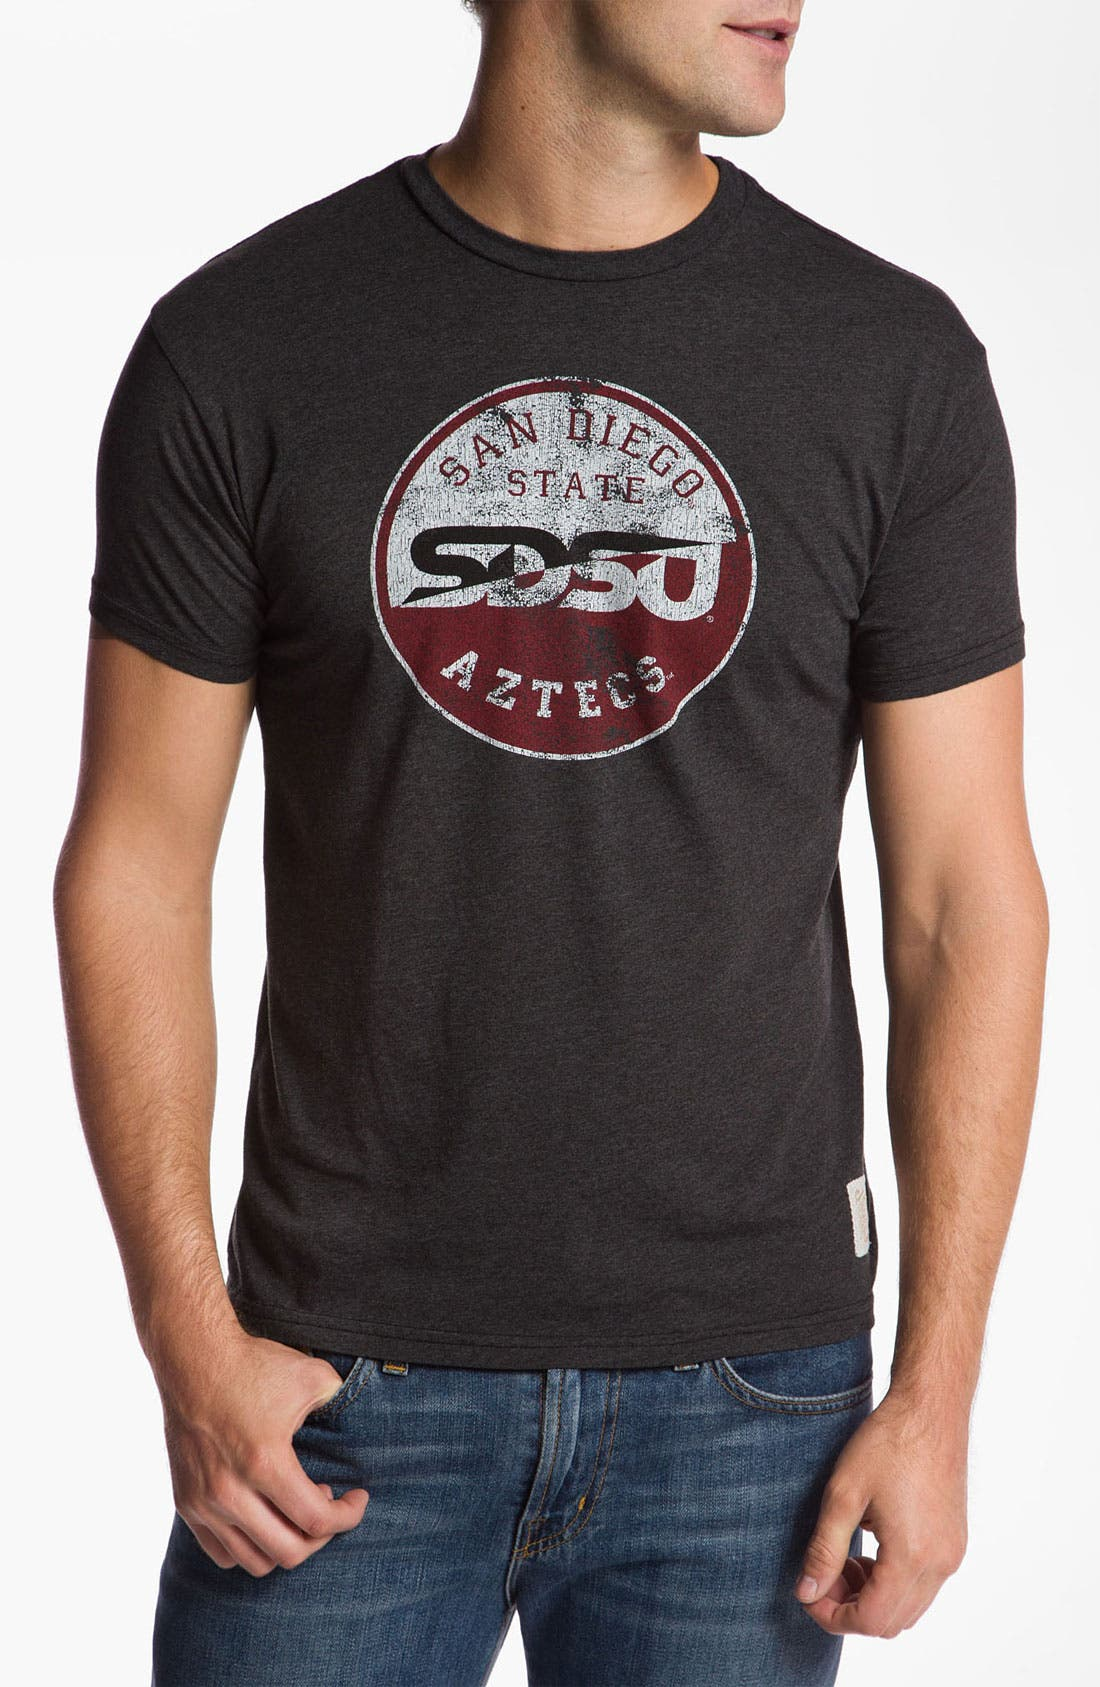 Alternate Image 1 Selected - The Original Retro Brand 'San Diego State' T-Shirt